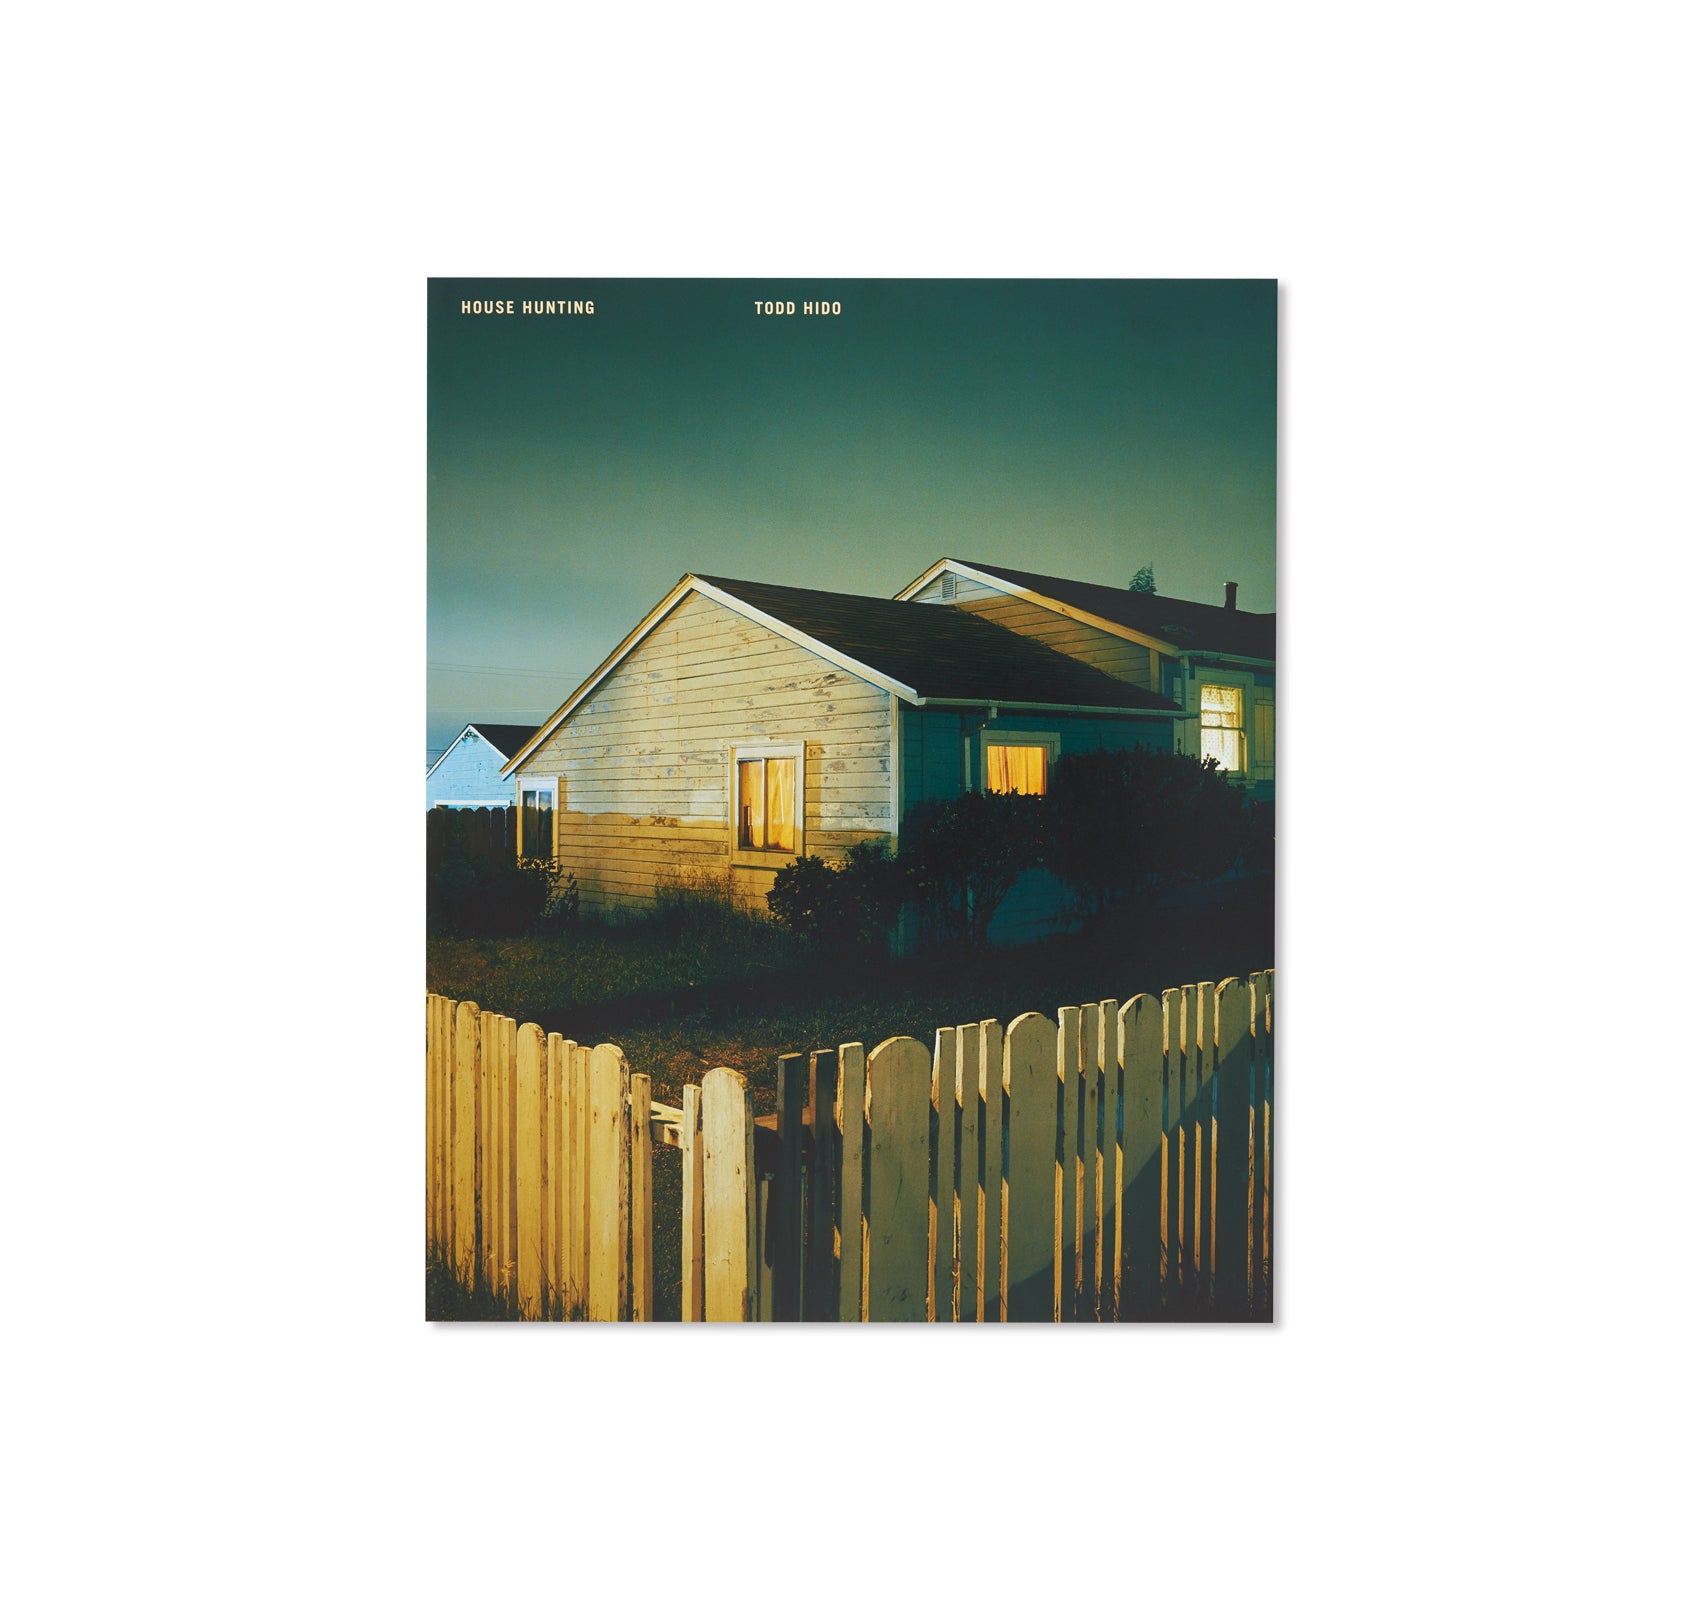 HOUSE HUNTING by Todd Hido [SPECIAL EDITION]